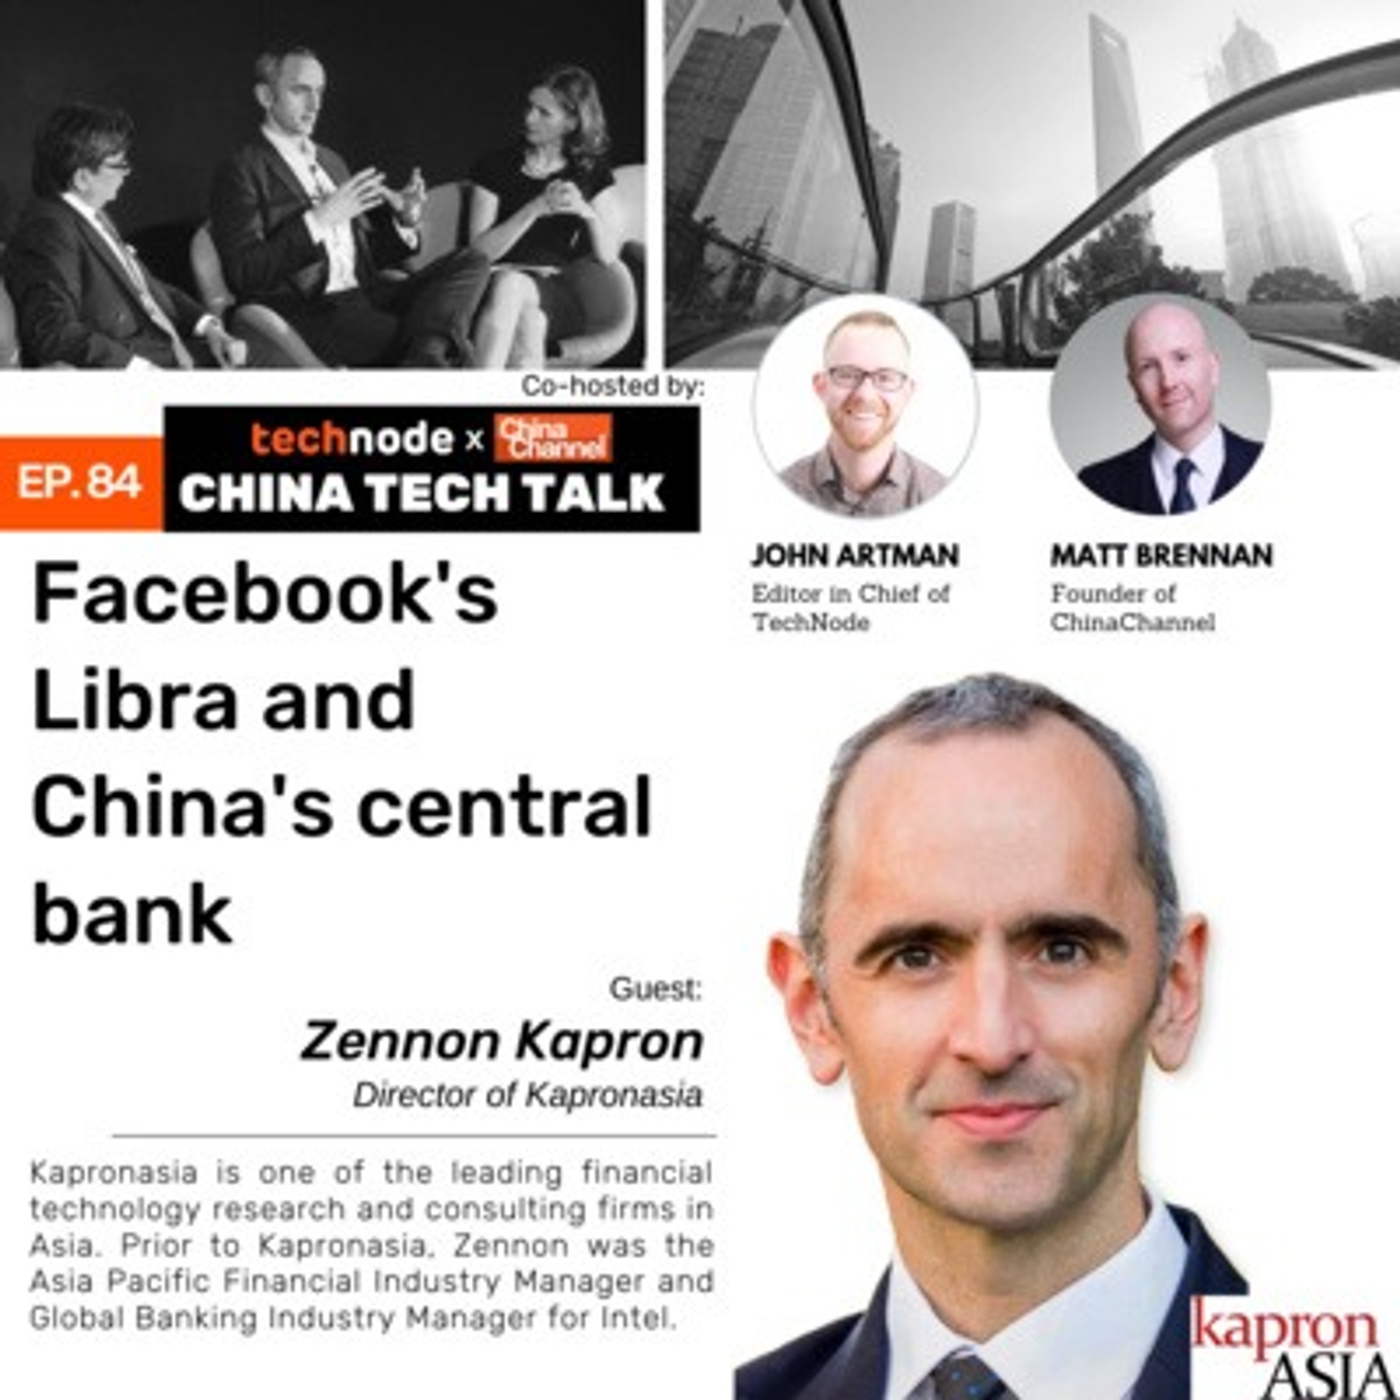 84: Facebook's Libra and China's Central Bank with Zennon Kapron